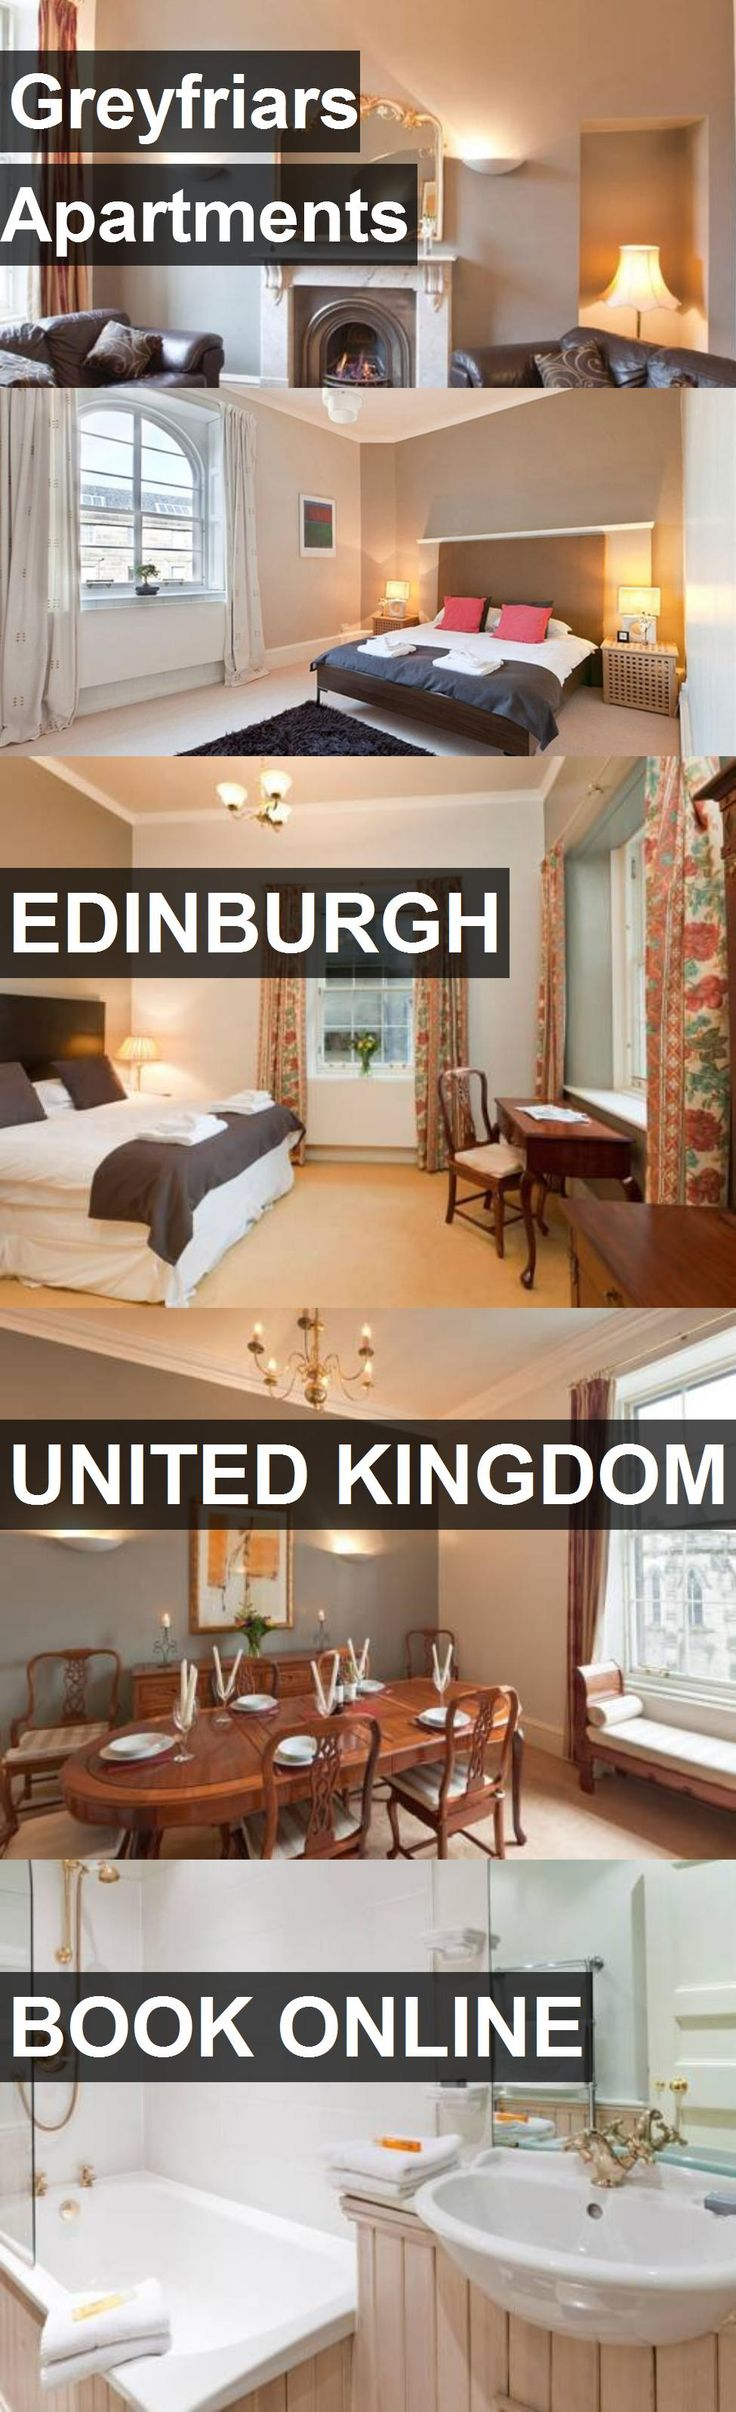 Greyfriars Apartments in Edinburgh, United Kingdom. For more information, photos, reviews and best prices please follow the link. #UnitedKingdom #Edinburgh #travel #vacation #apartment